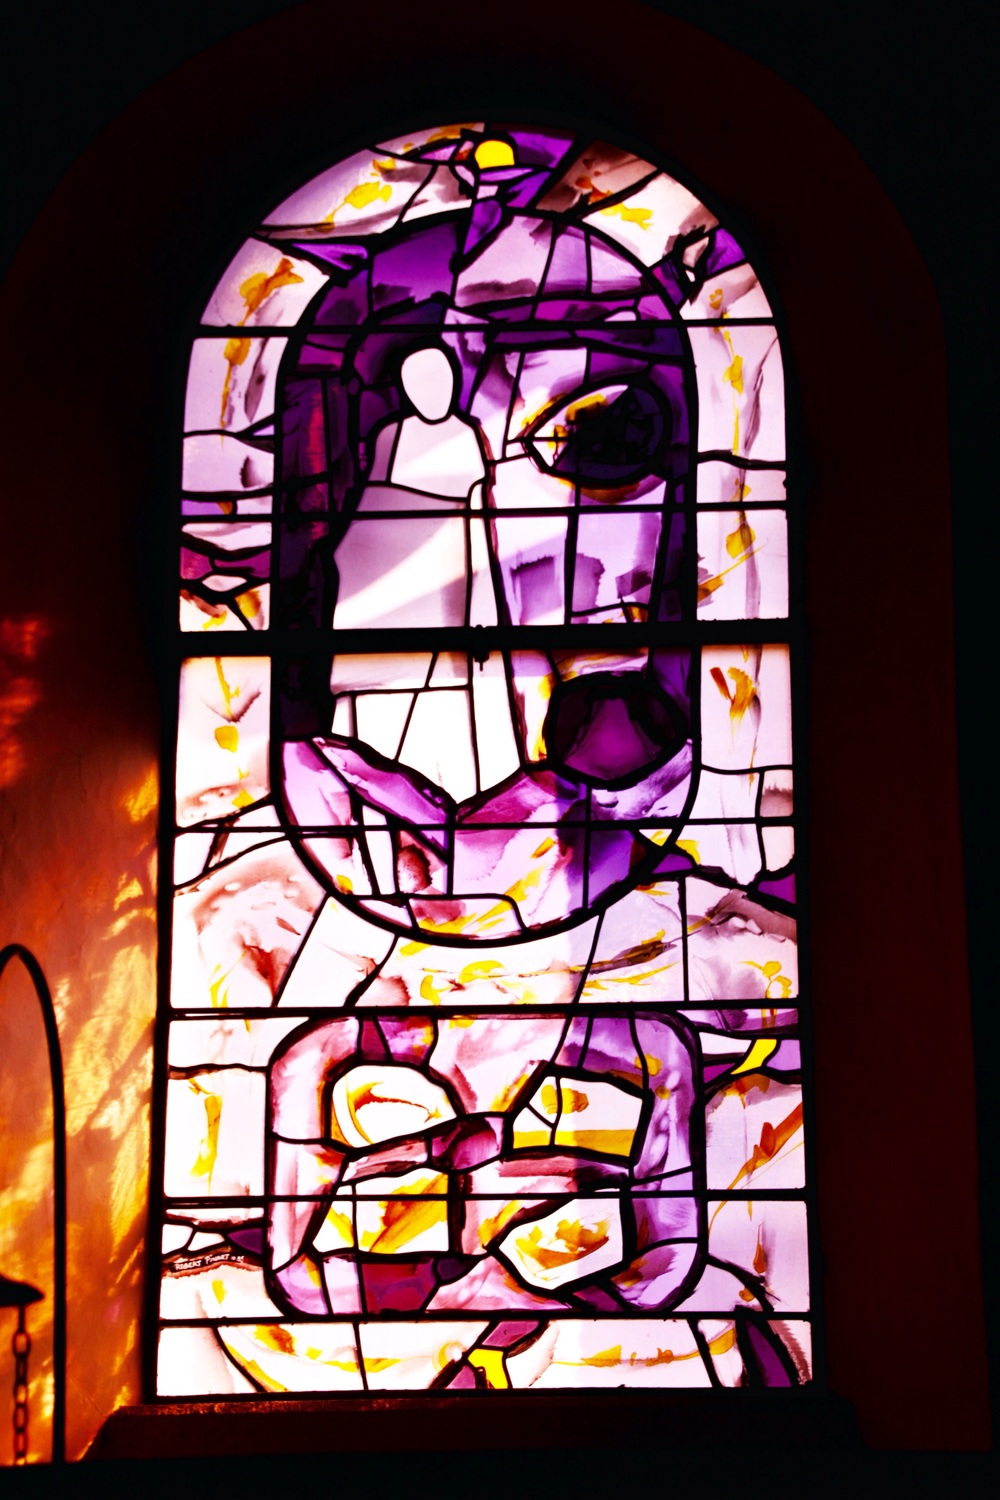 One of the windows at Holy Cross Monastery.